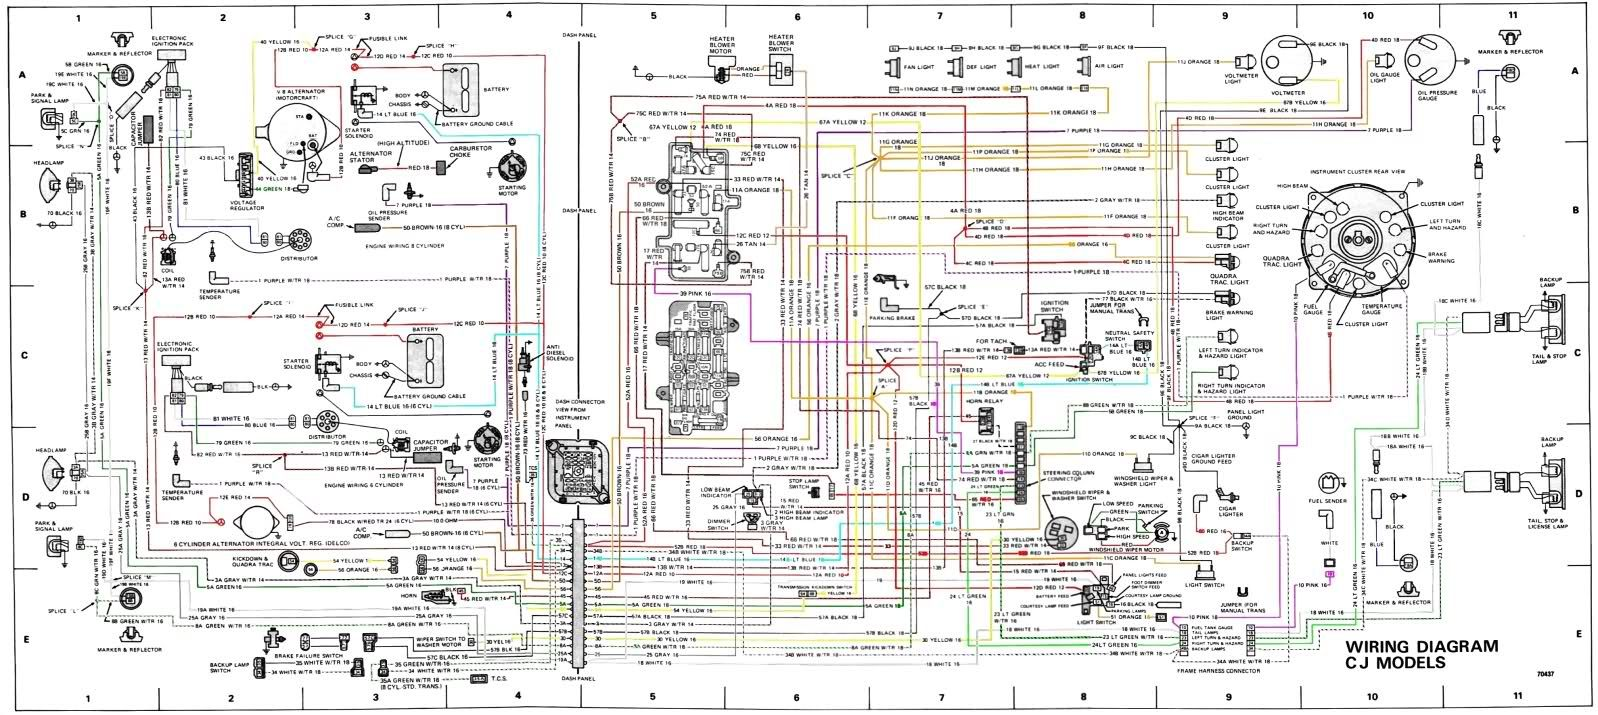 image result for jeep cj7 wiring harness diagram jeep wire diagram 83 jeep cj7 wiring  [ 1598 x 715 Pixel ]